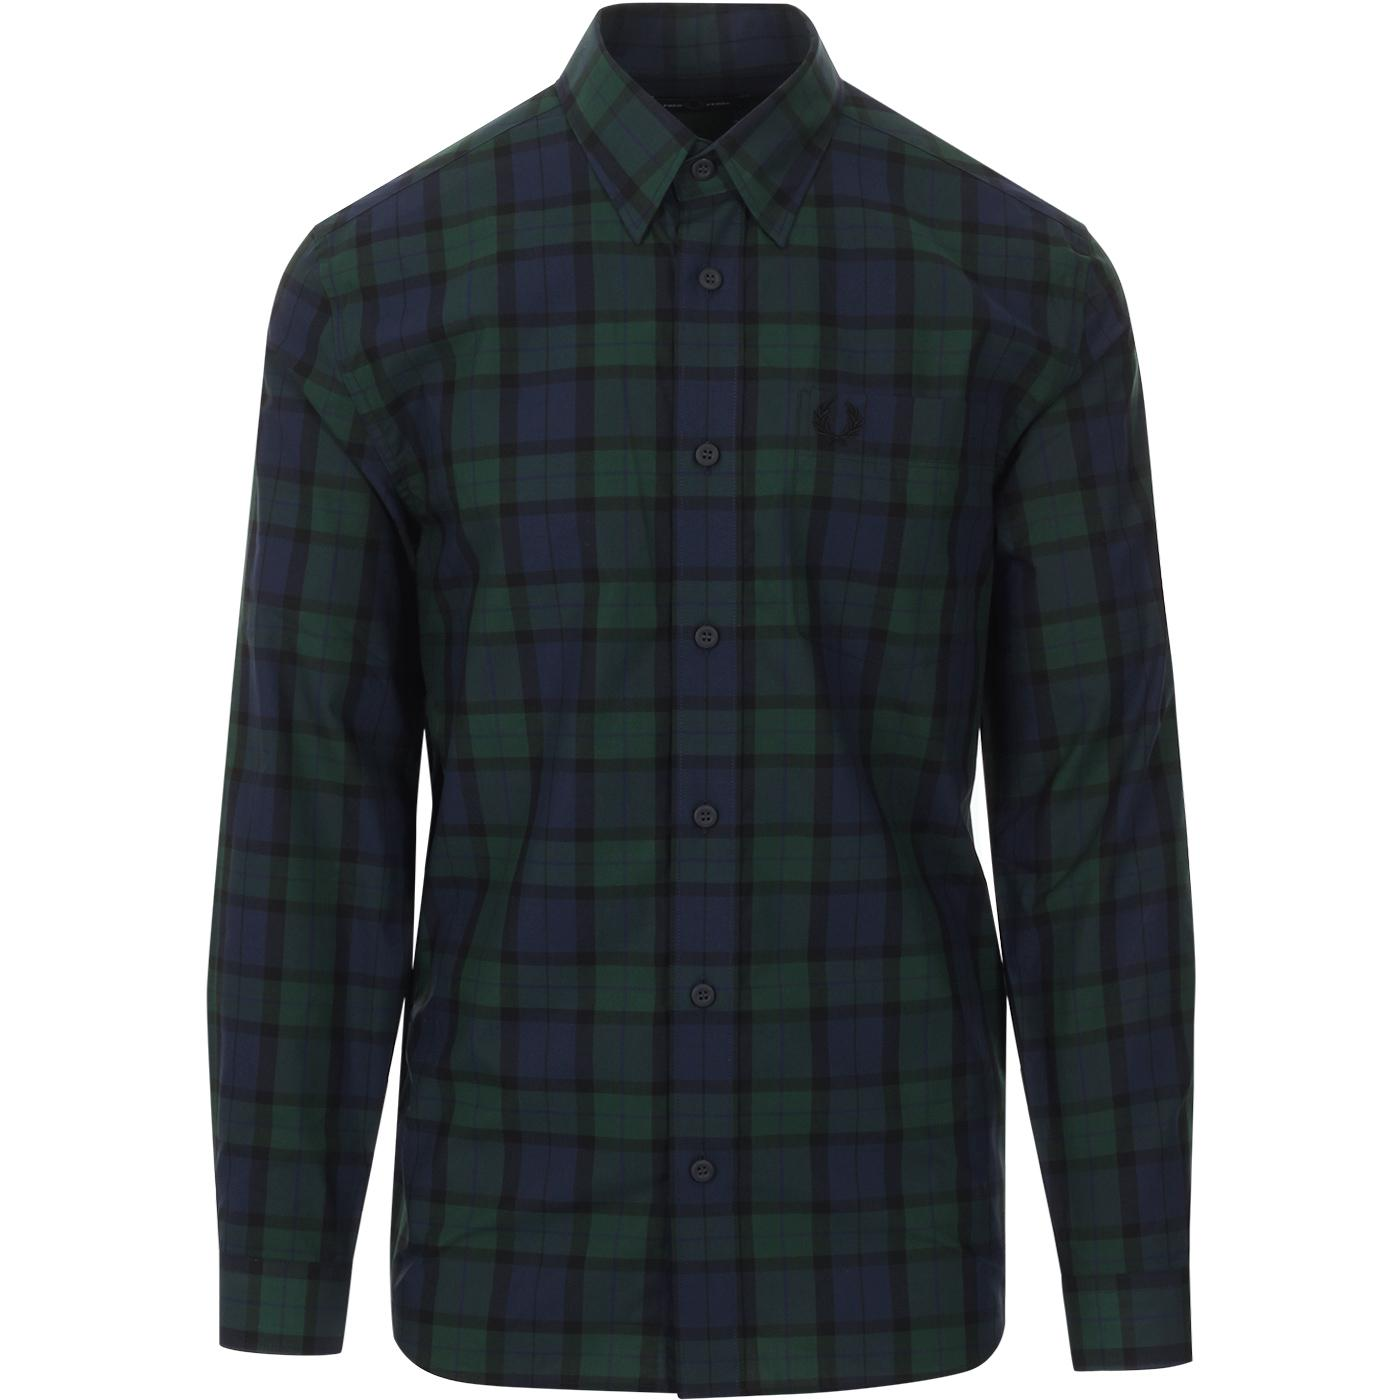 FRED PERRY Button Through Retro Green Tartan Shirt